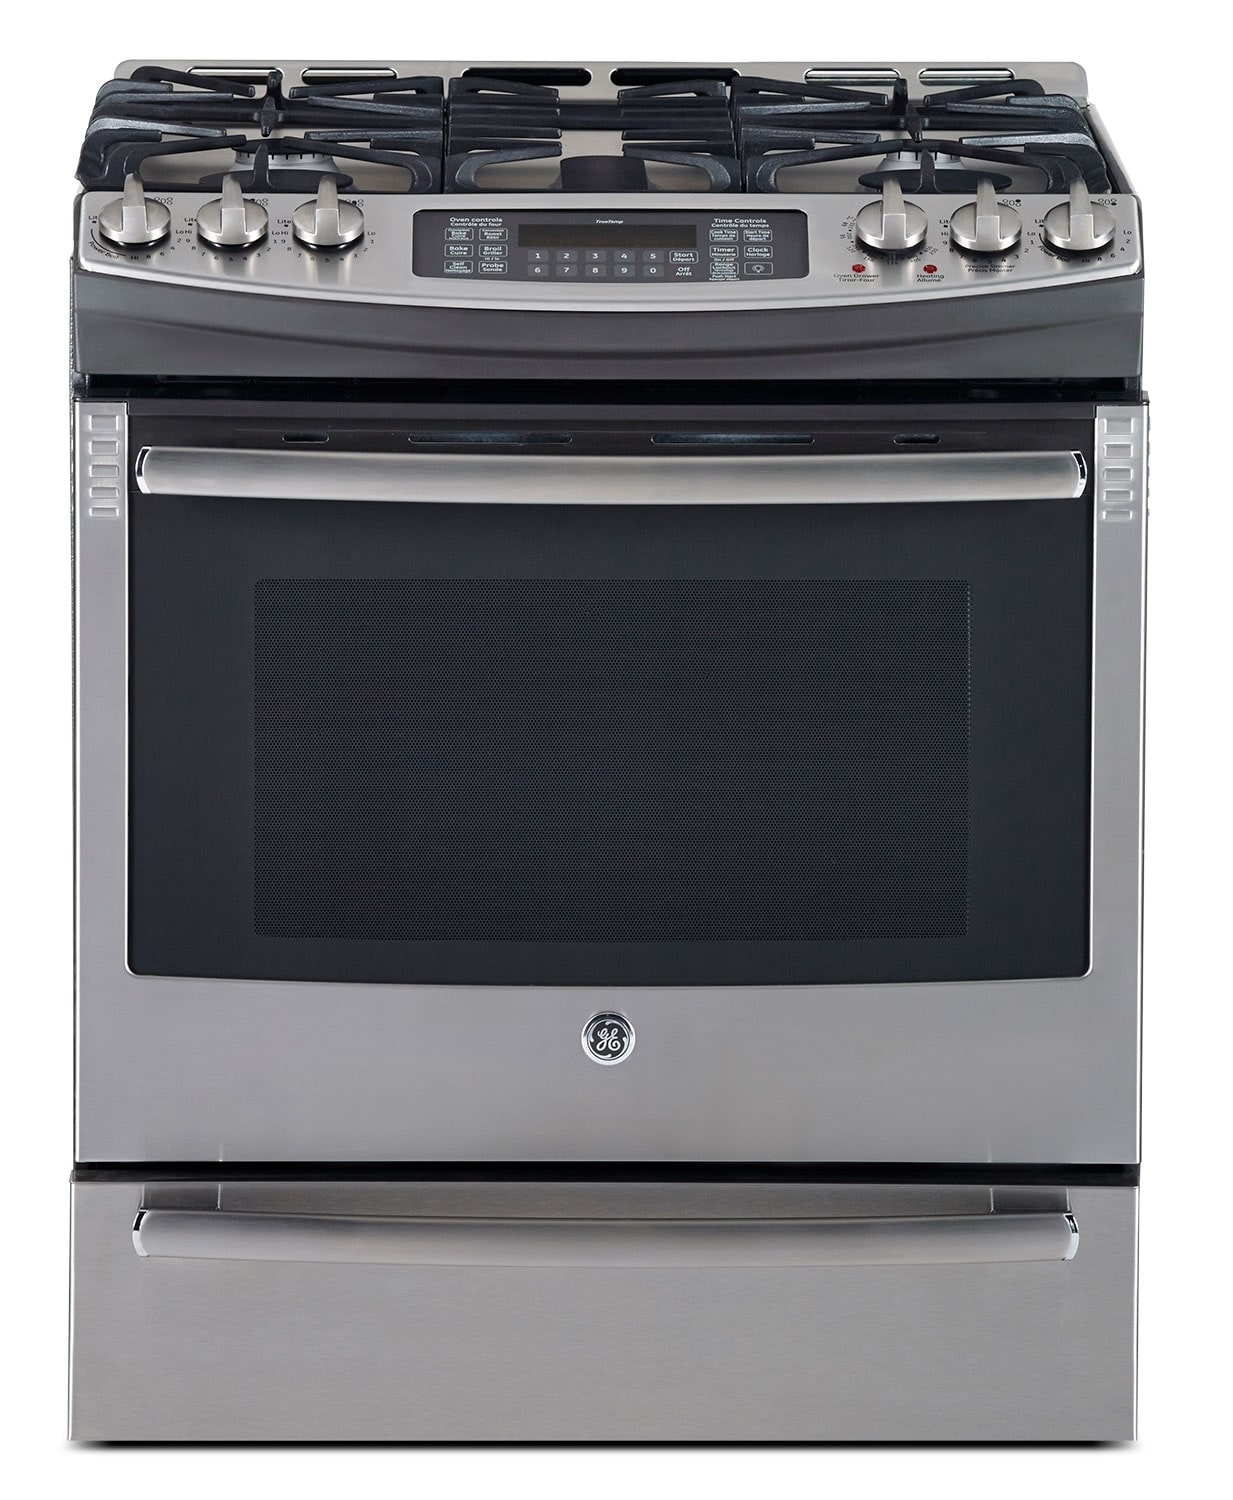 Cooking Products - GE Stainless Steel Slide-In Dual Fuel Convection Range (6.3 Cu. Ft.) - PC2S910SEFSS